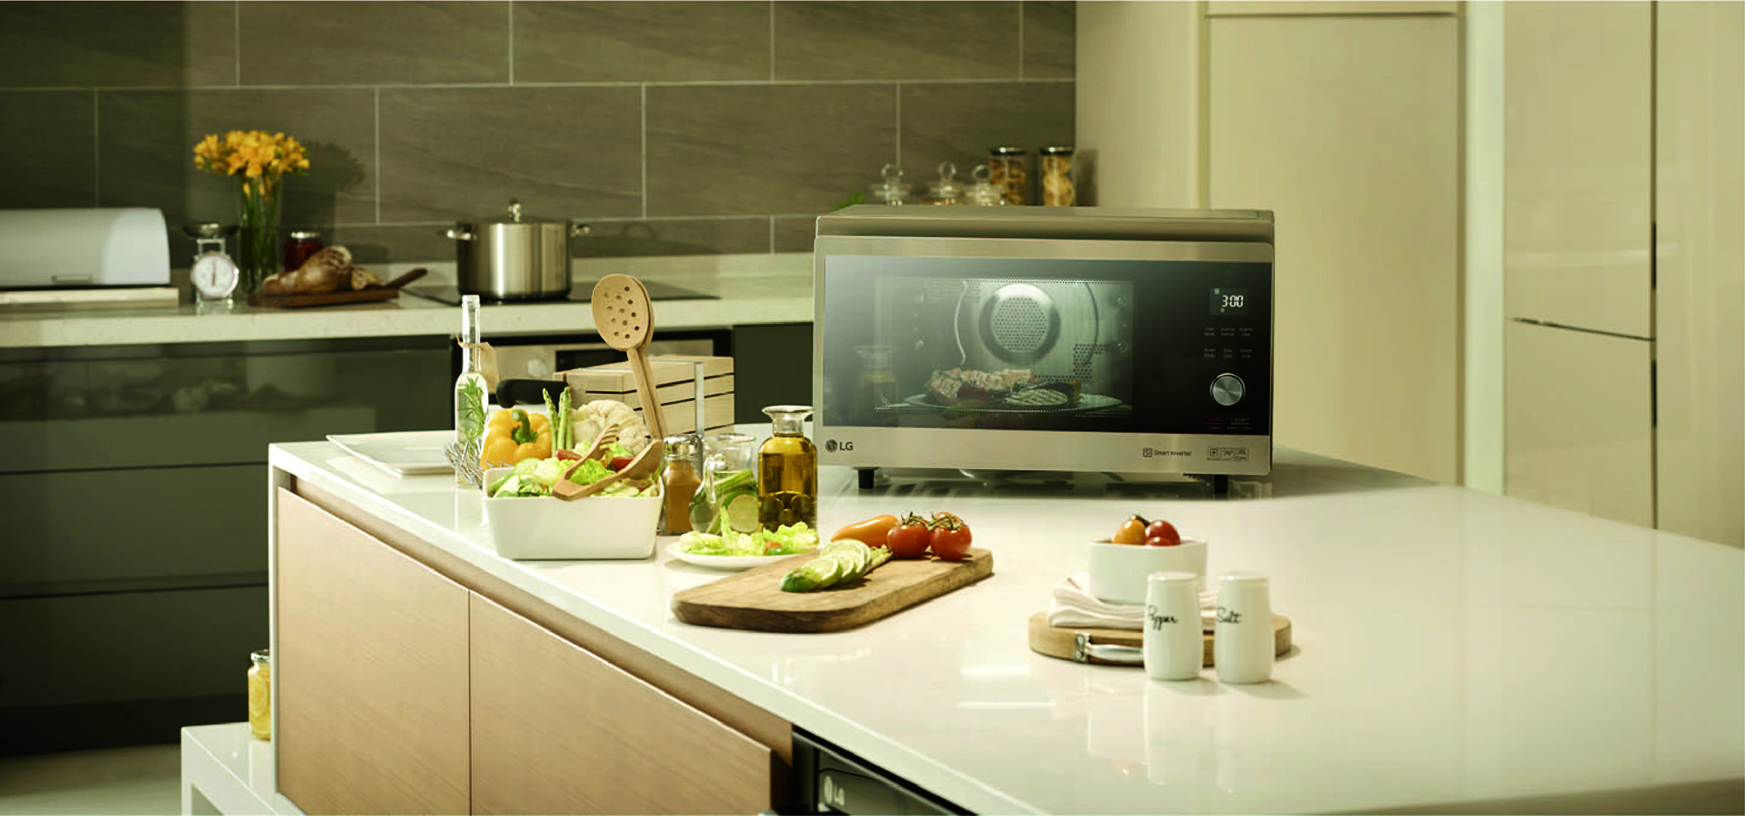 LG introduces new Neochef microwave oven in Oman